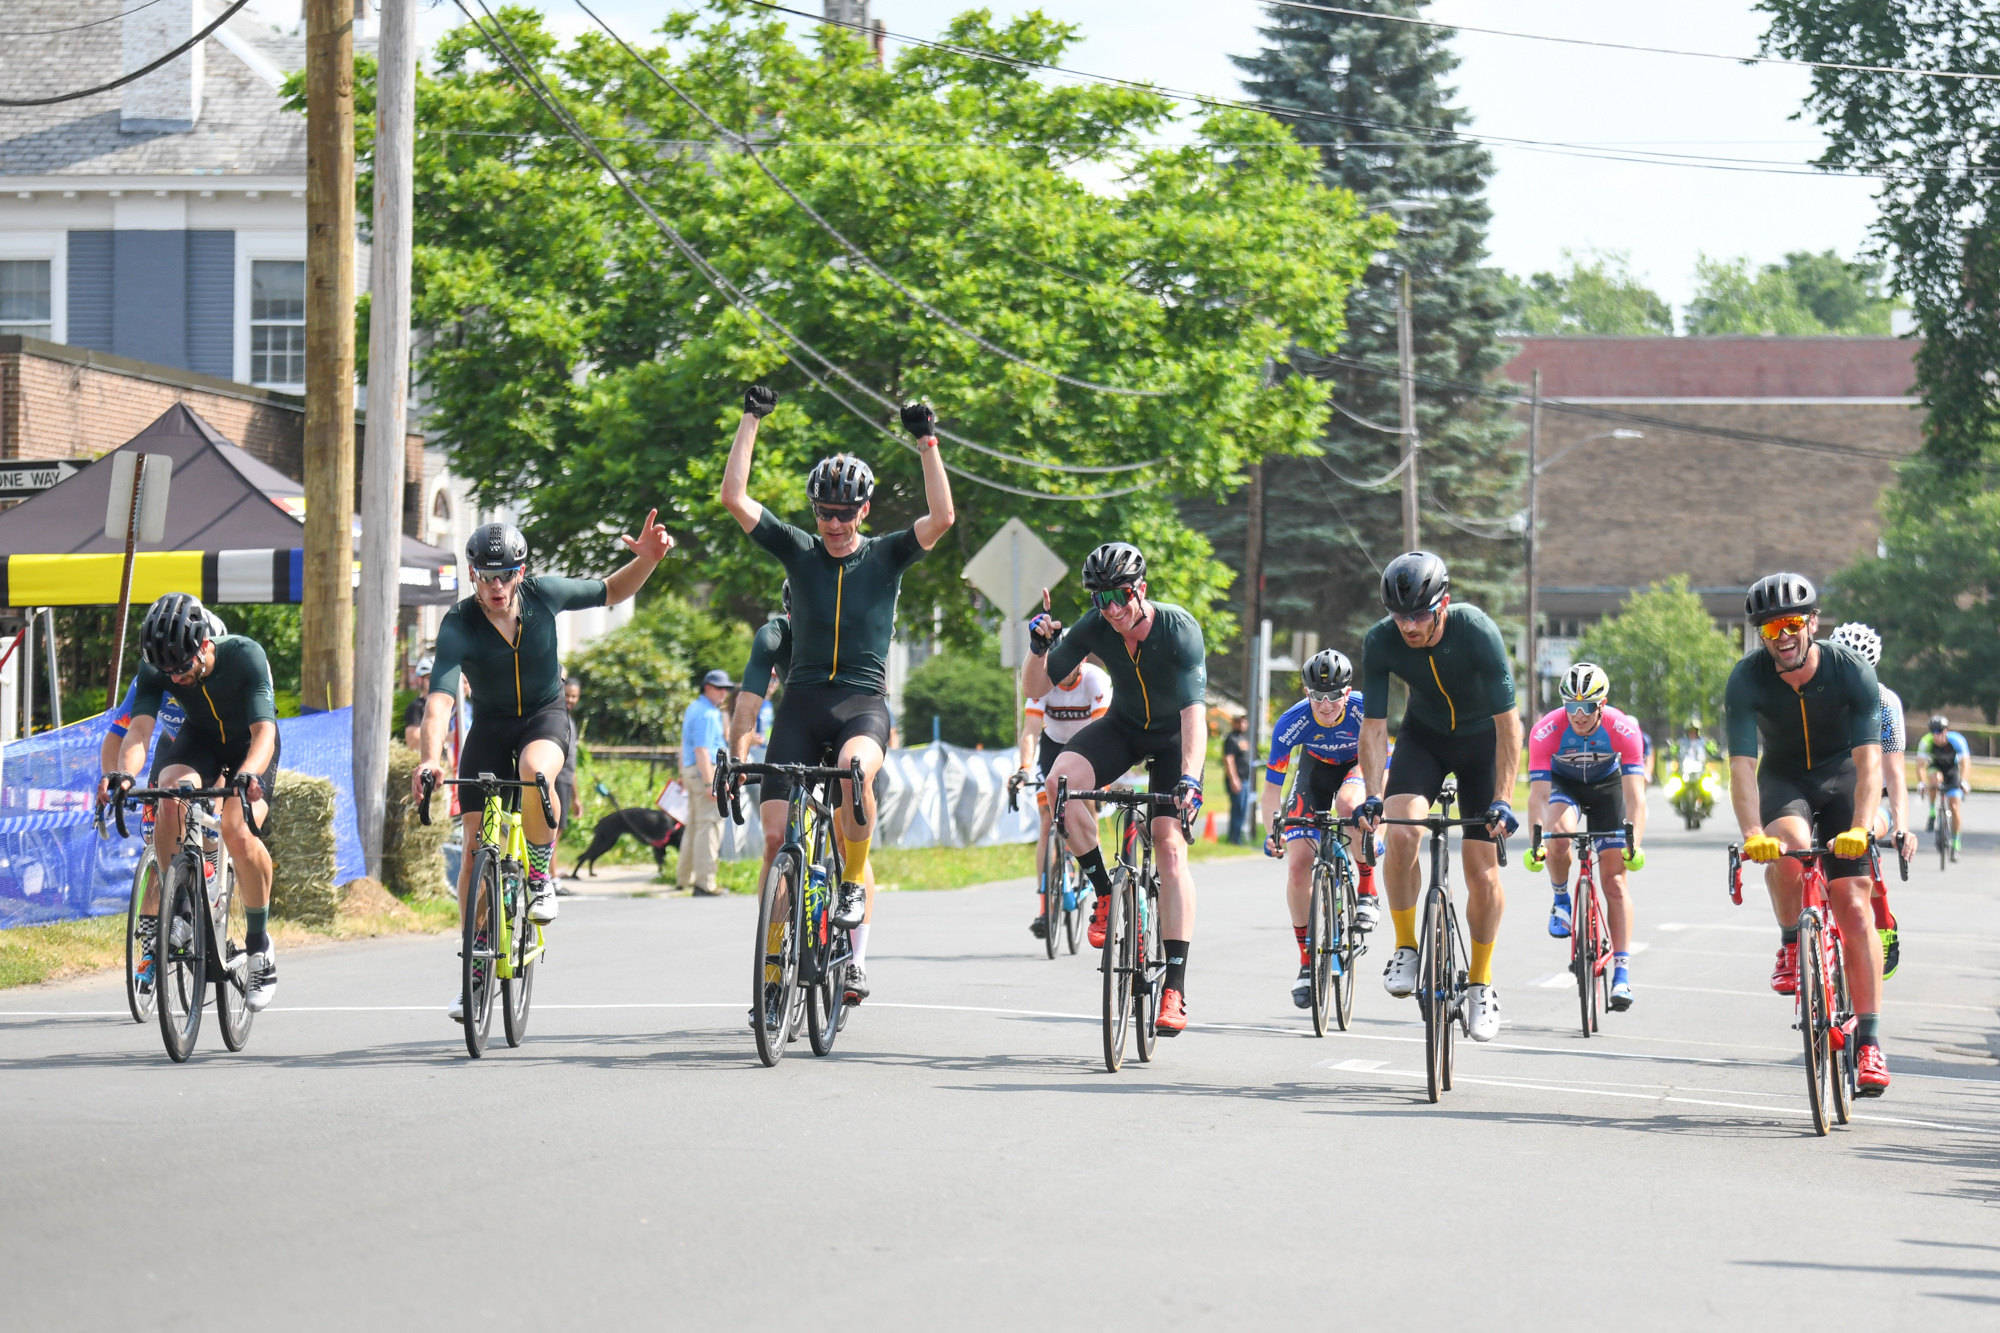 After lapping the field twice in one of the most bananas races we have ever seen, Kevin Bouchard-Hall rolled in for a celebratory win with the rest of his Velocio Northeast teammates